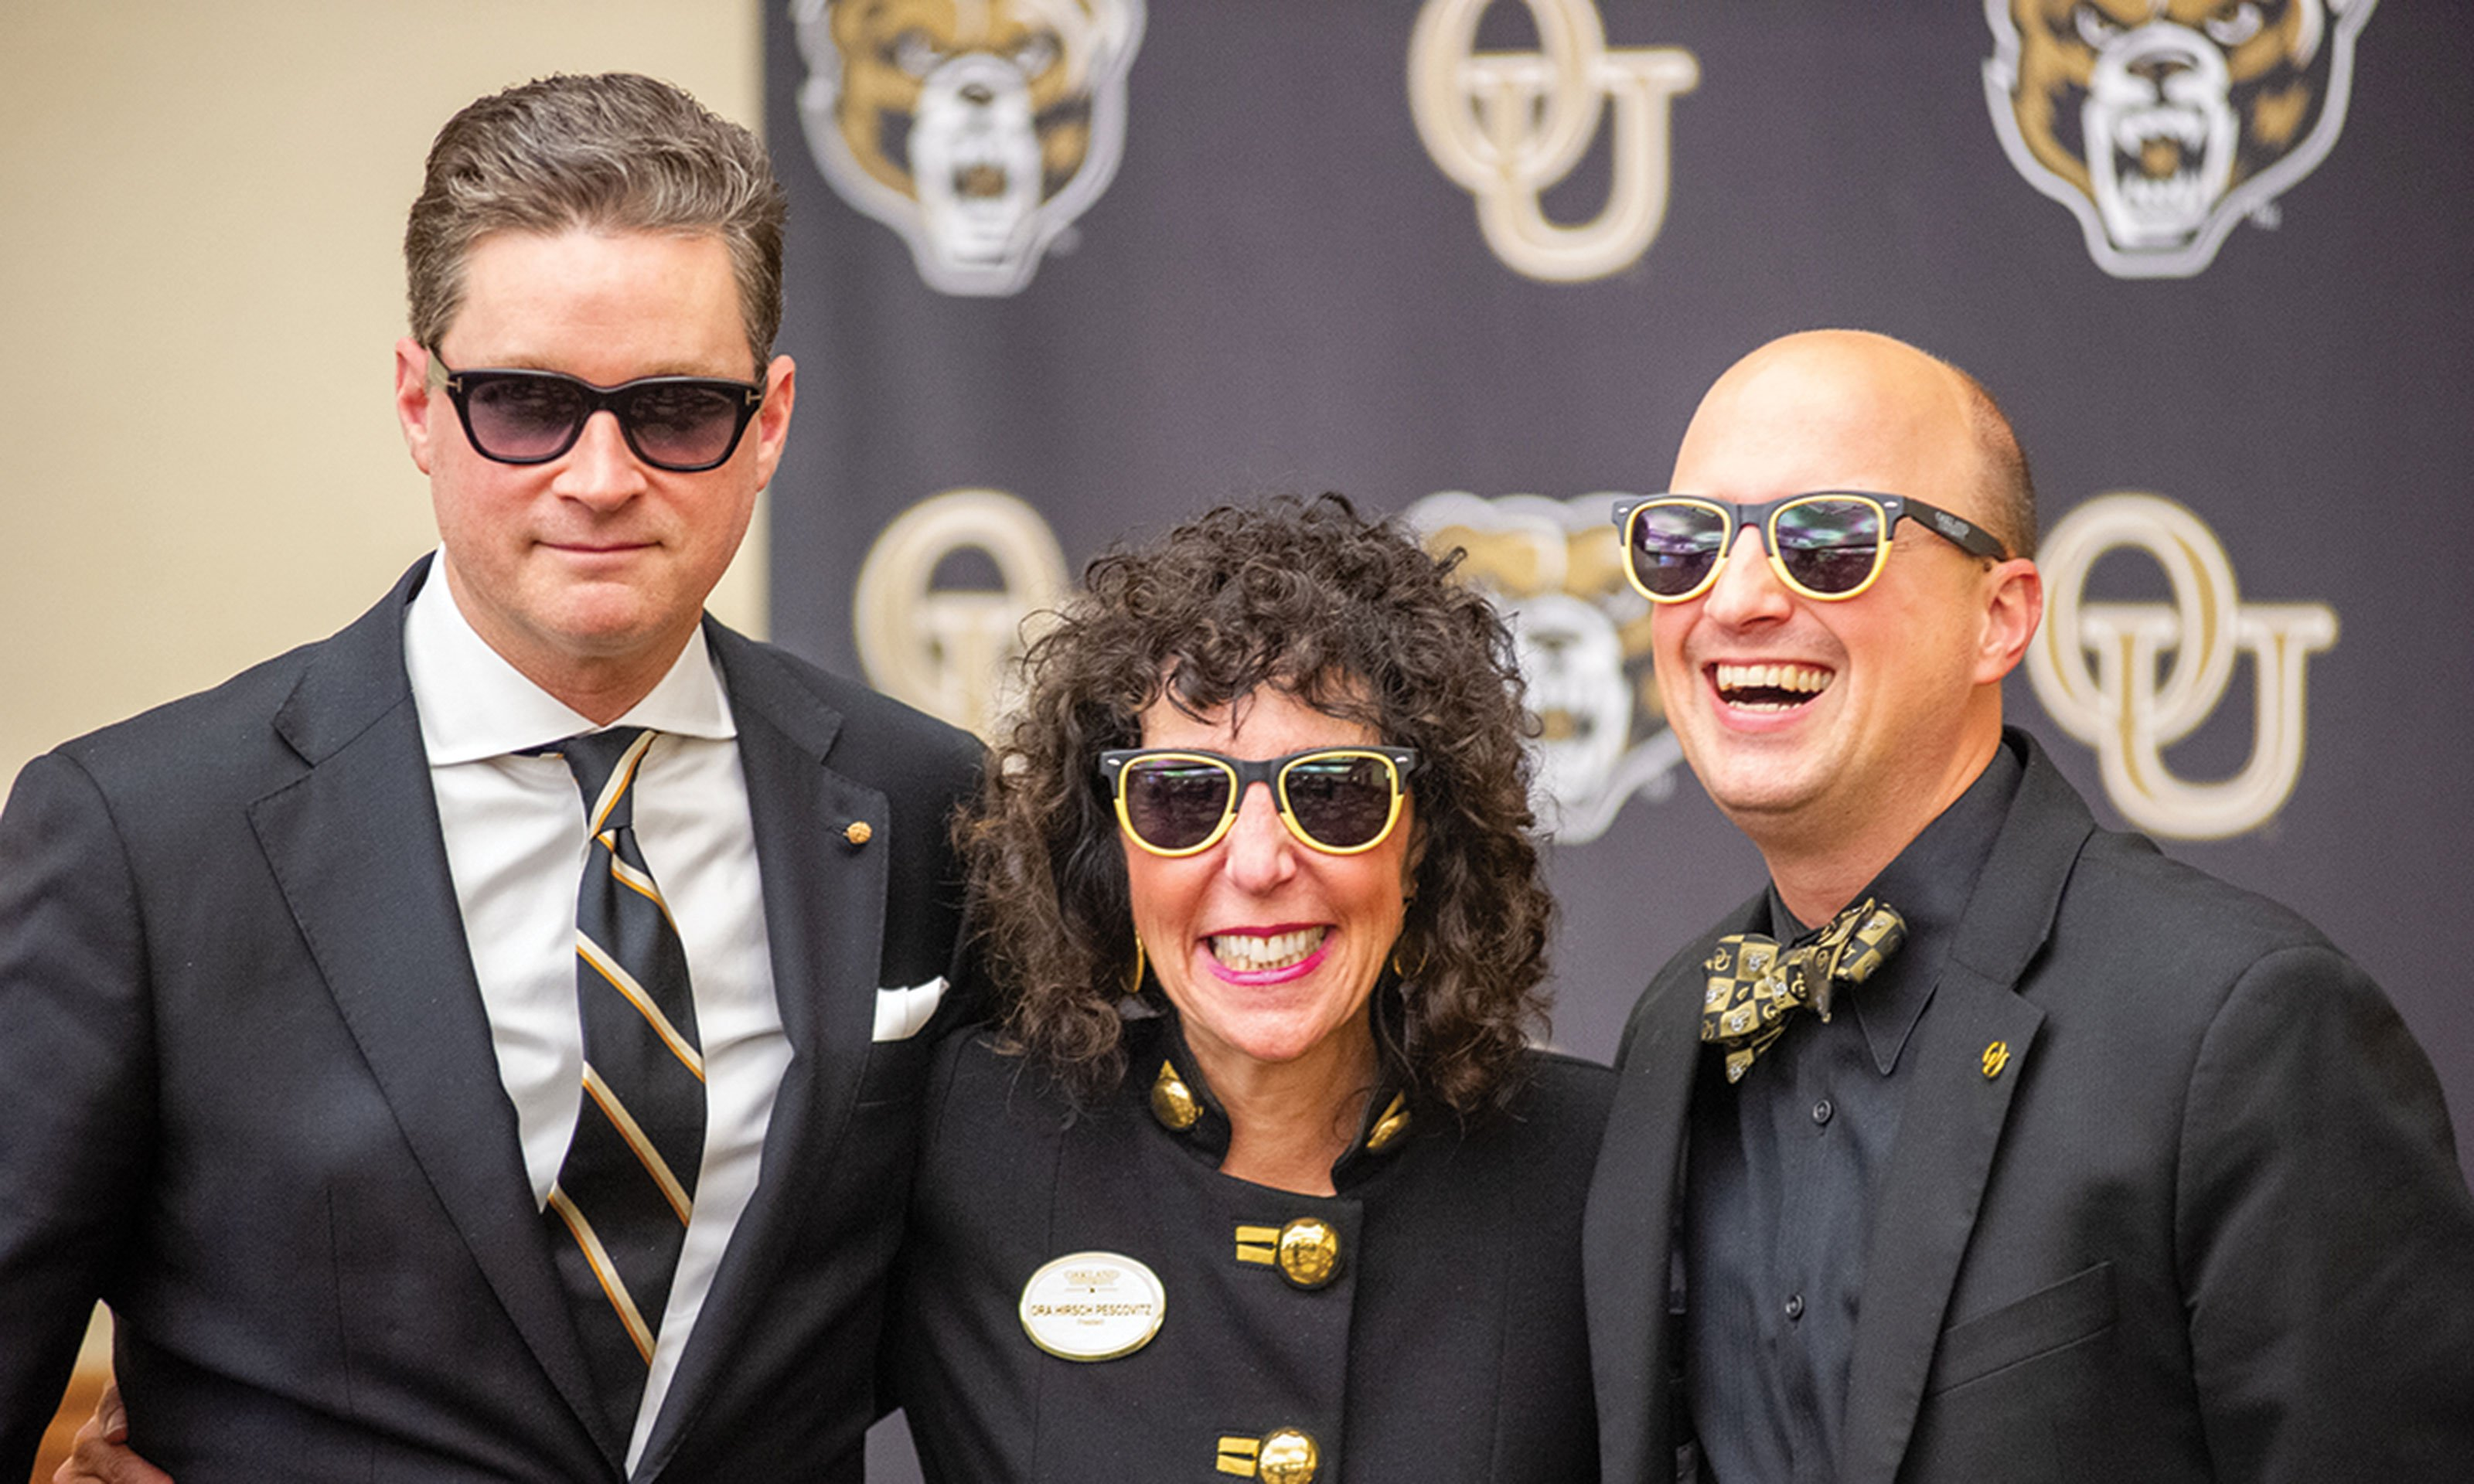 OU President Ora Hirsch Pescovitz poses with two people